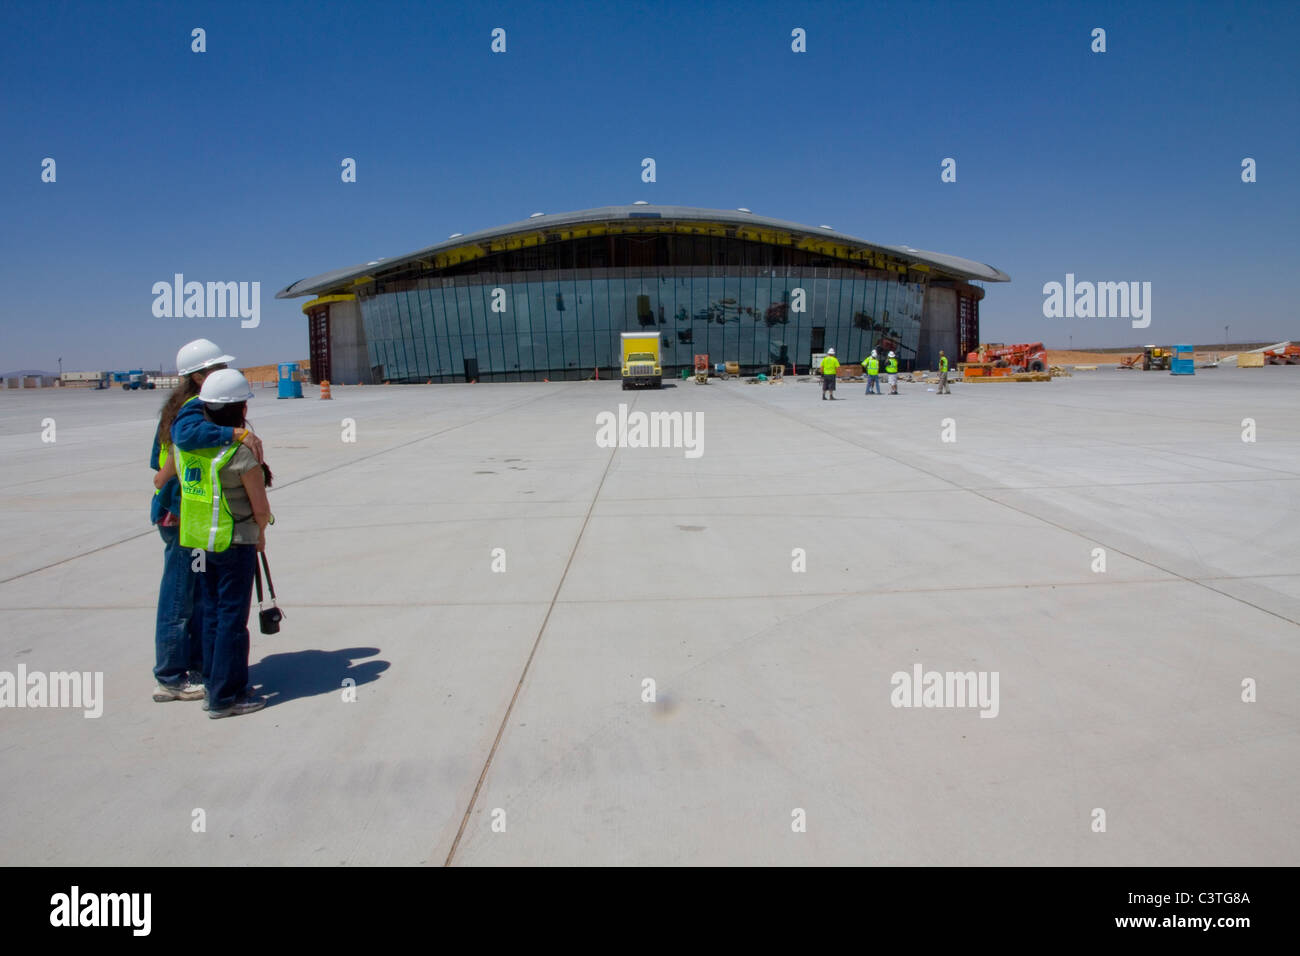 Virgin Galactic Terminal Hangar Facility, near Truth or Consequences, NM - Stock Image